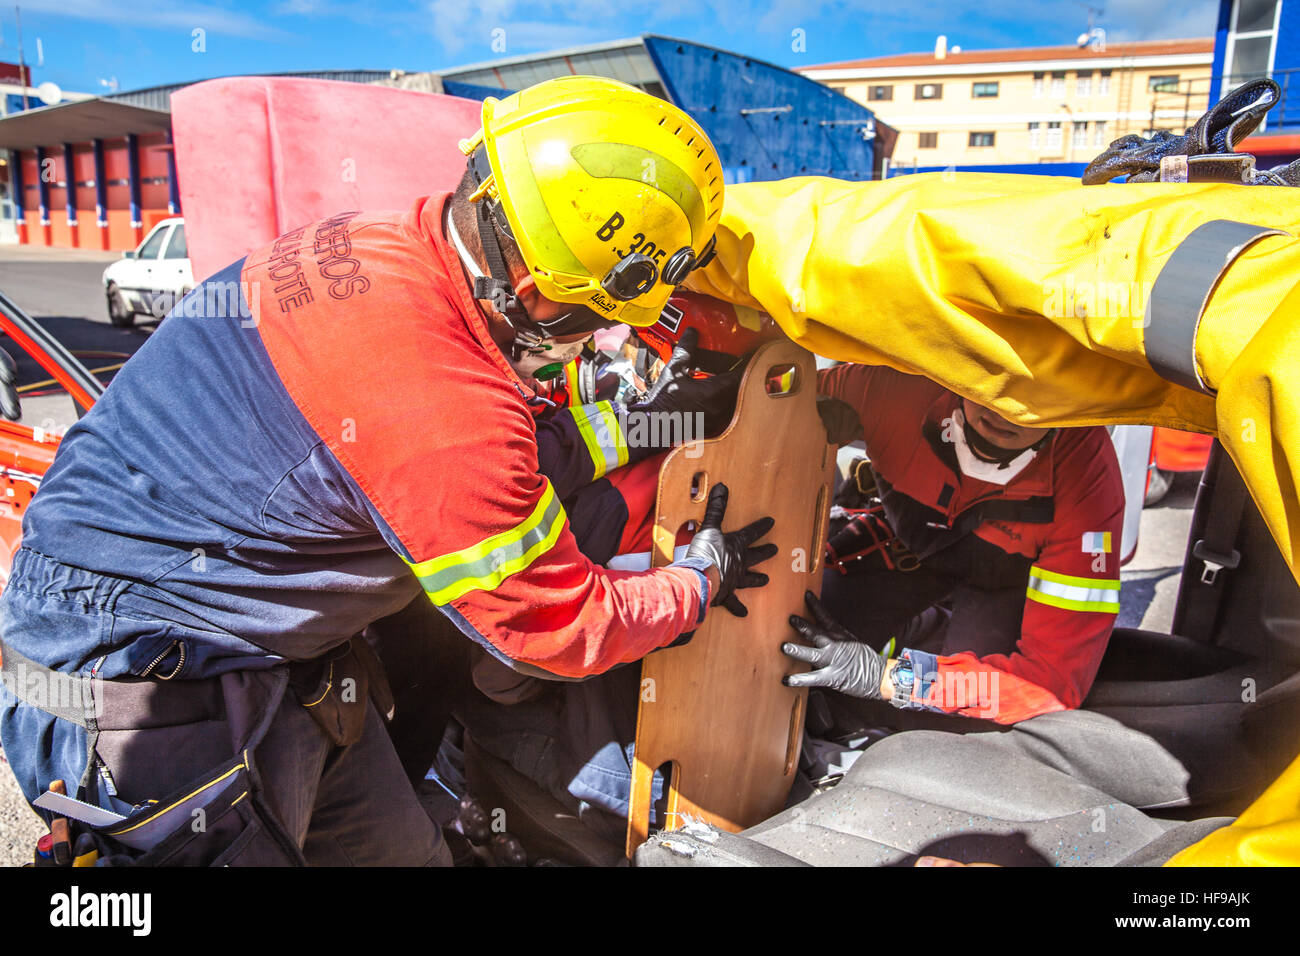 firemen during a car accident simulation - Stock Image